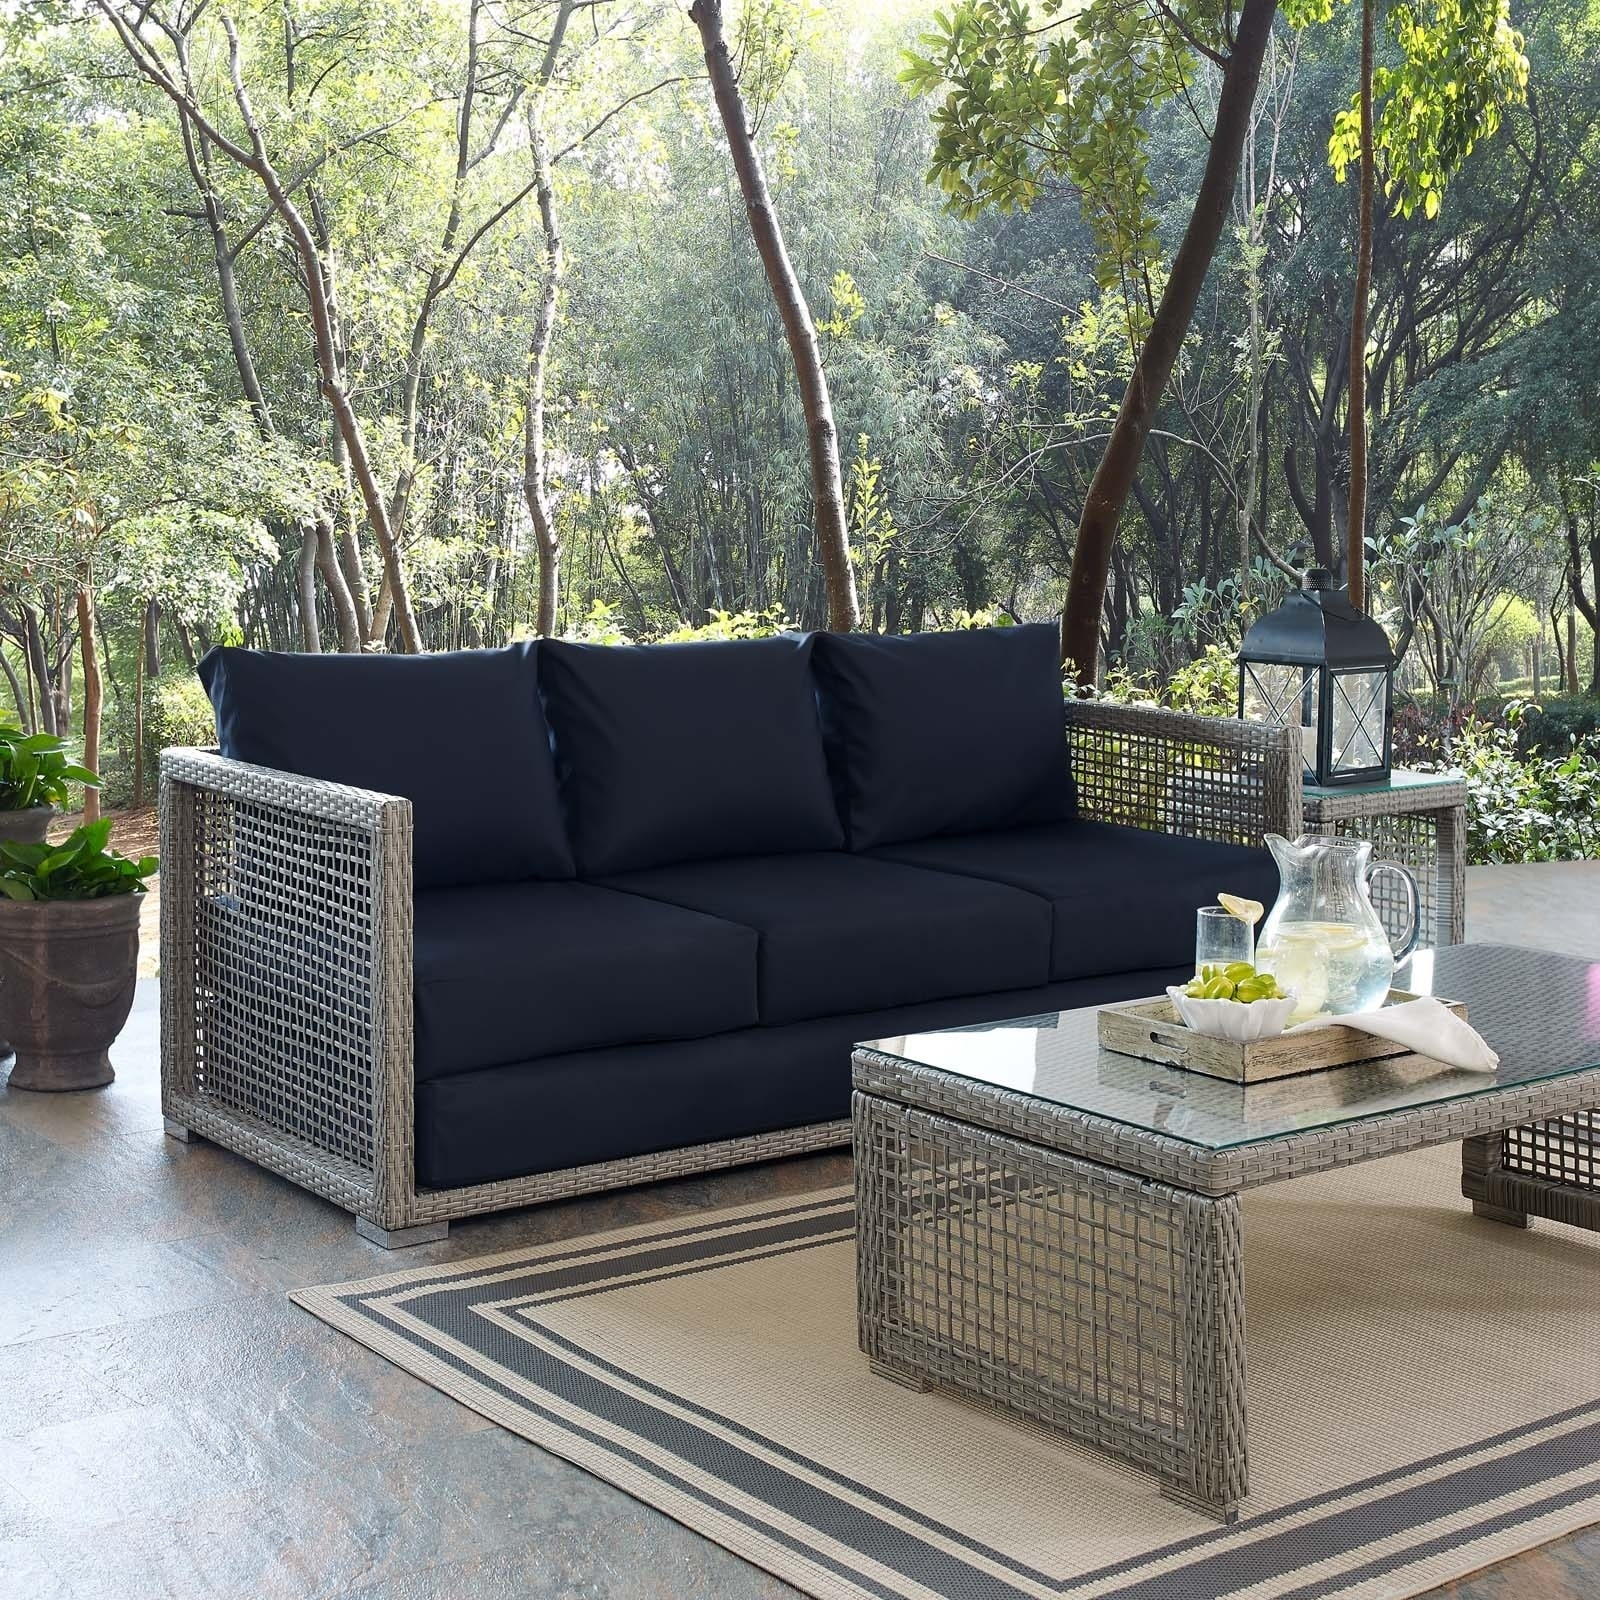 Aura Outdoor Patio Wicker Rattan Sofa Free Shipping Today 20748057